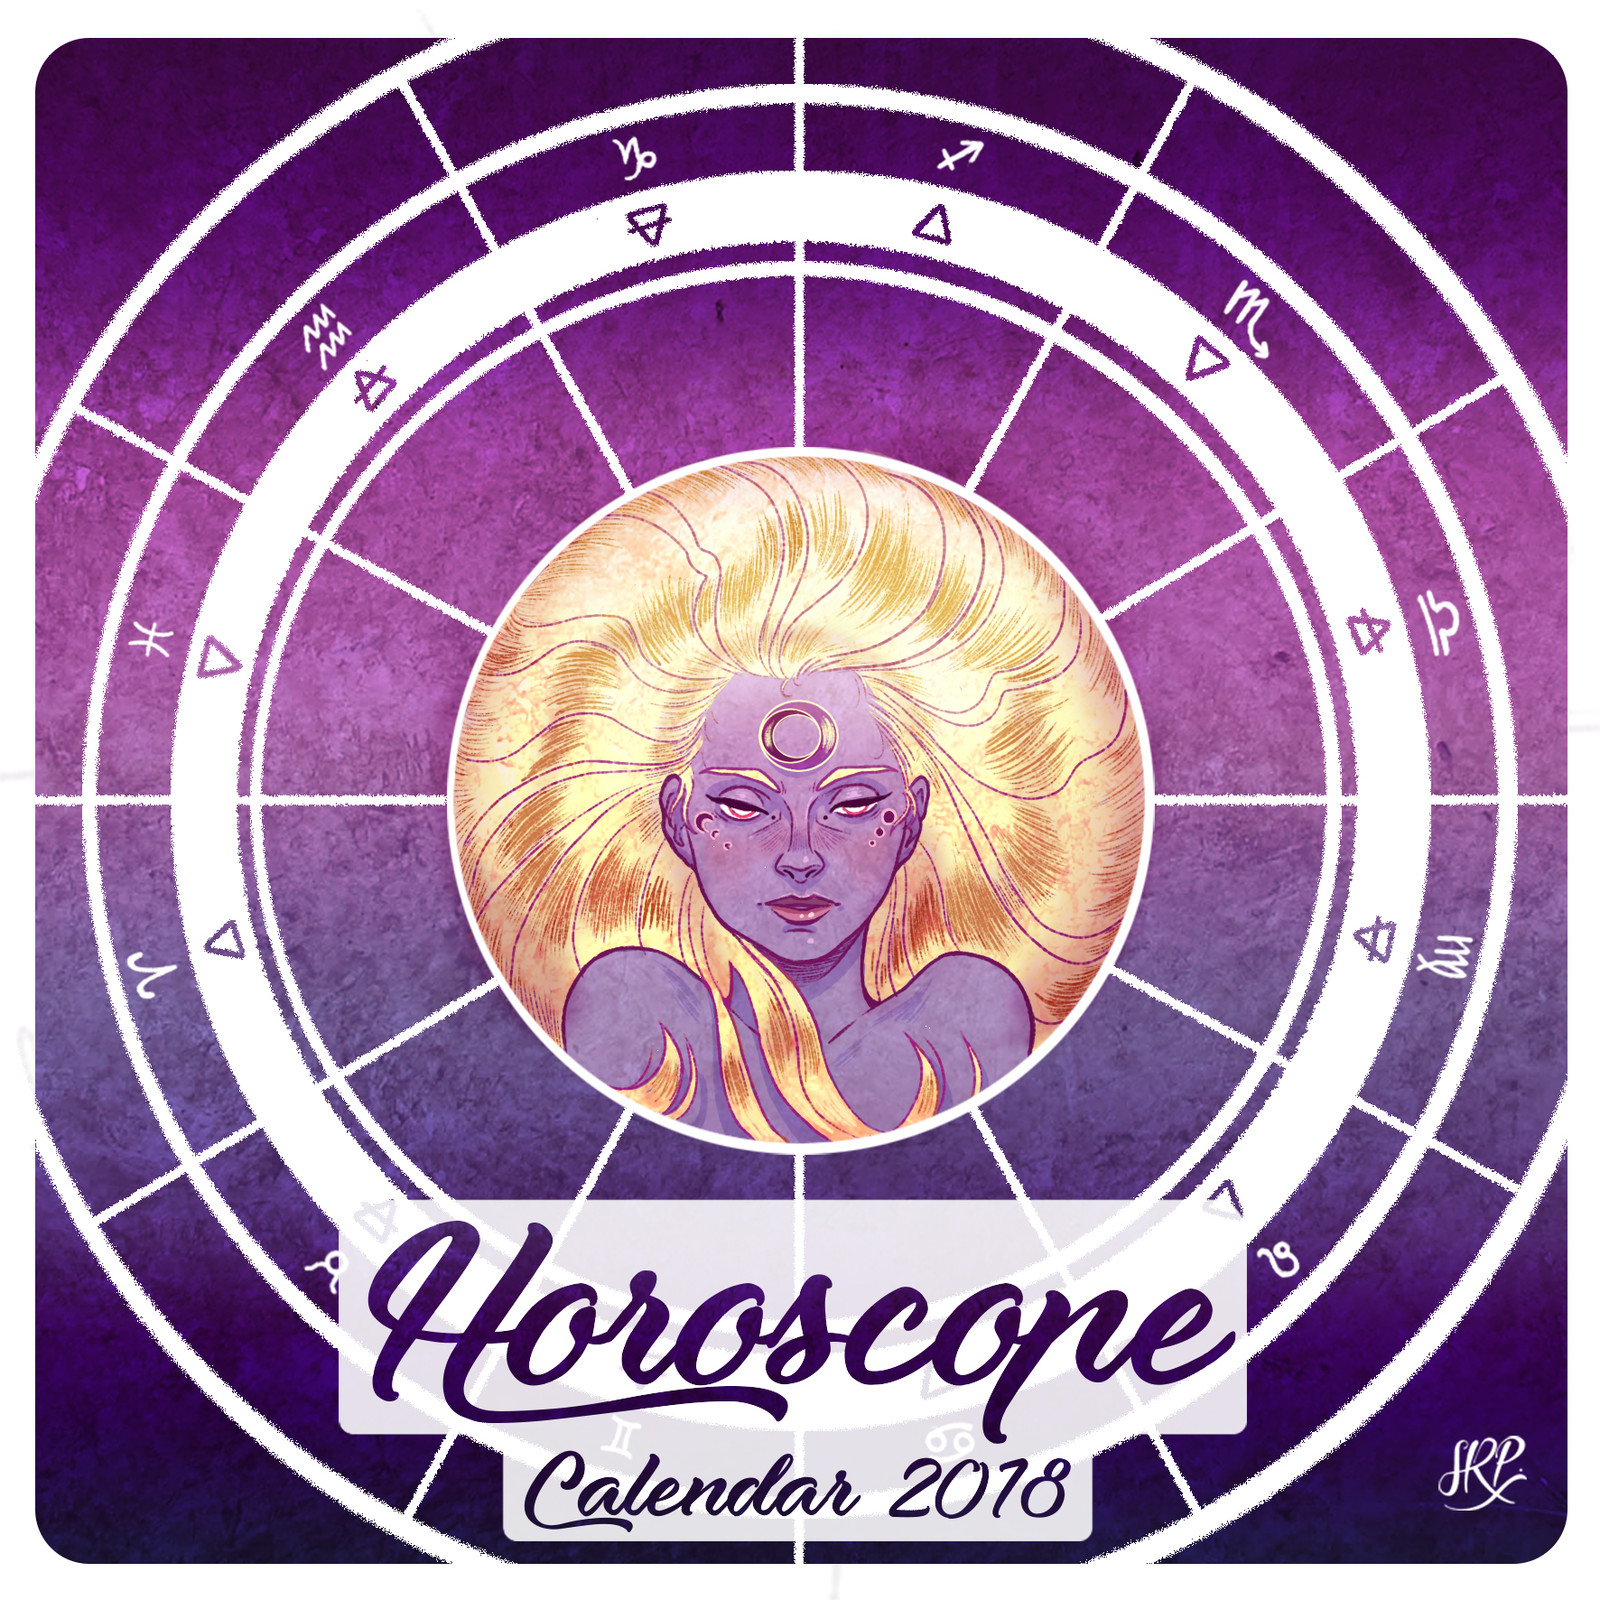 Horoscope Calendar